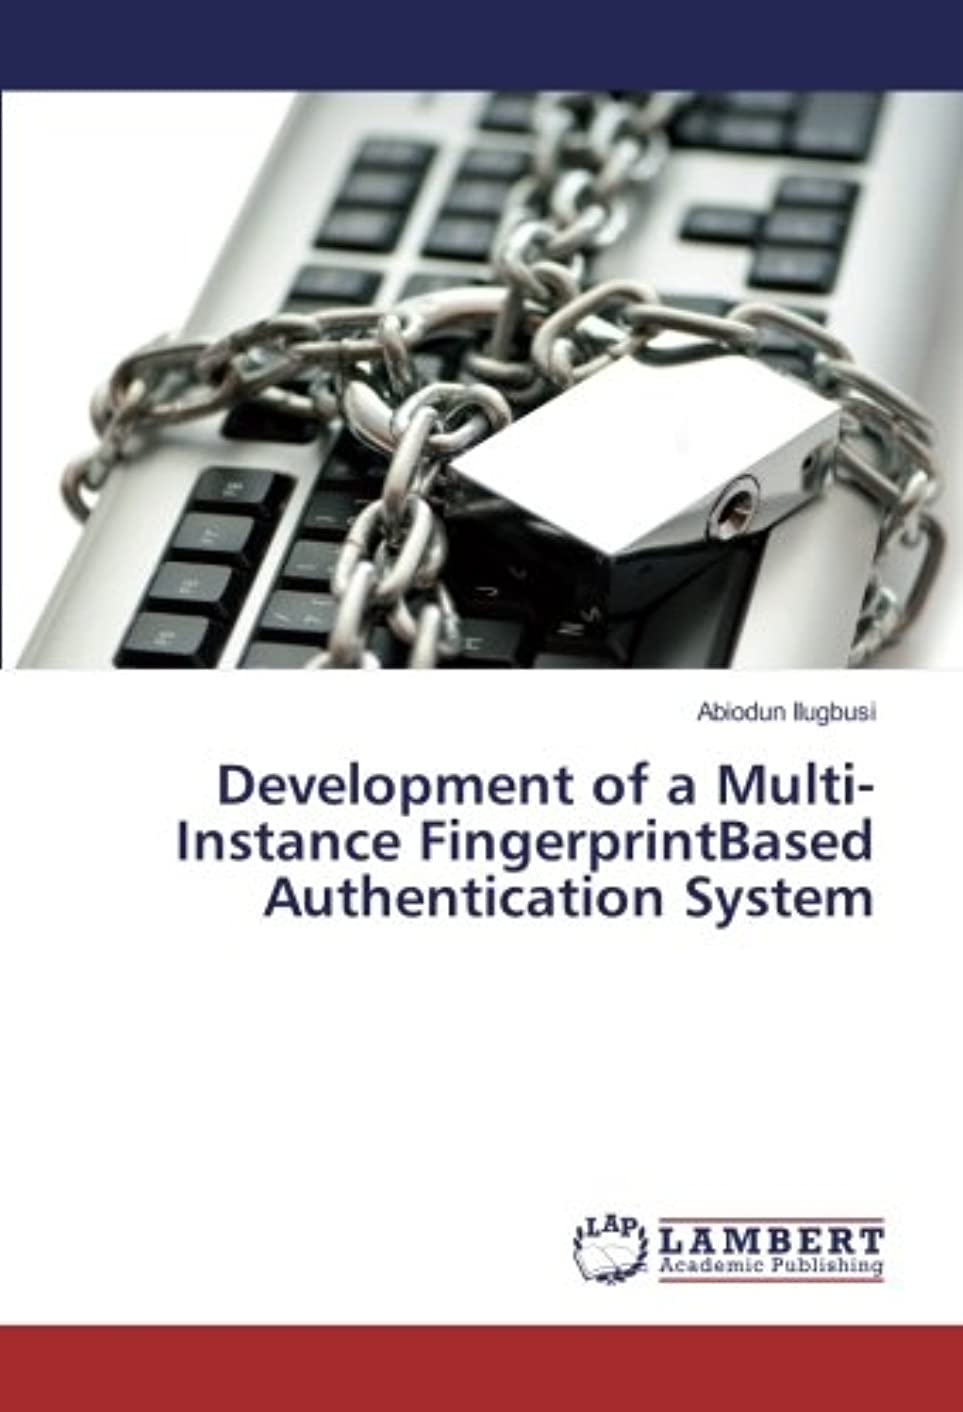 タイト周囲ムスタチオDevelopment of a Multi-Instance FingerprintBased Authentication System